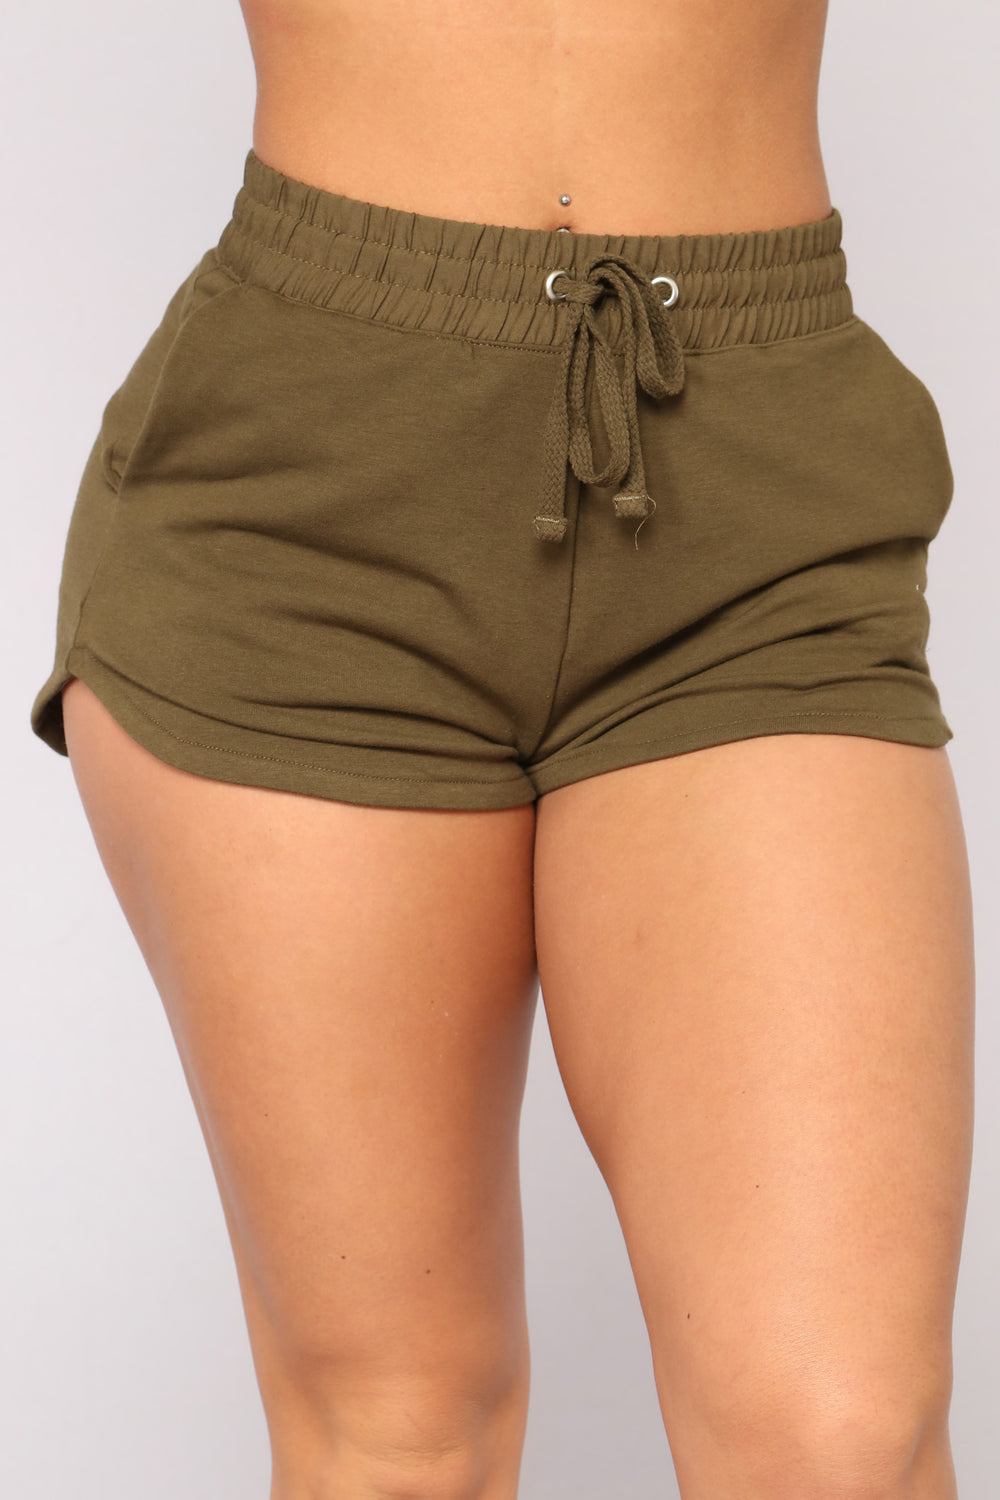 Still Chillin Dolphin Shorts - Olive